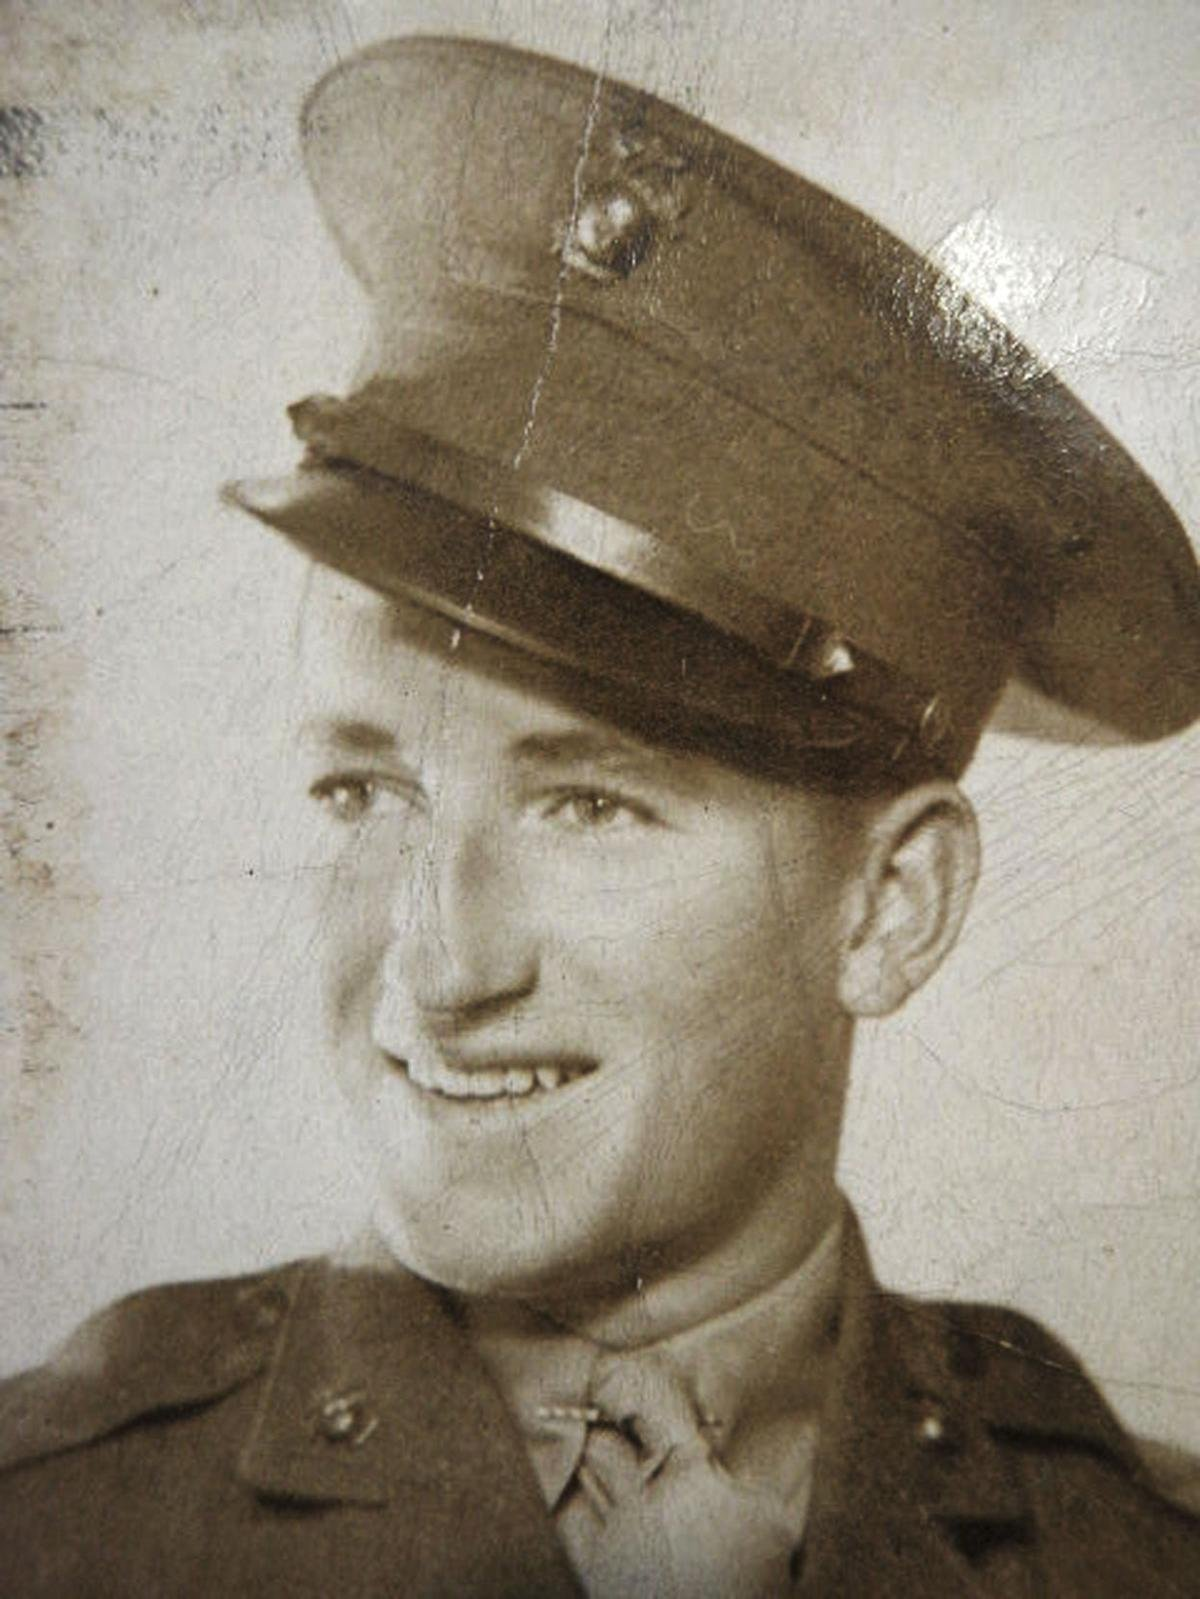 This circa 1940s photo released by the Defense POW/MIA Accounting Agency shows Marine Corps Pfc. Francis E. Drake, born in Framingham, Mass., raised in Springfield, and killed in 1942 during the WWII Battle of Guadalcanal in the South Pacific.